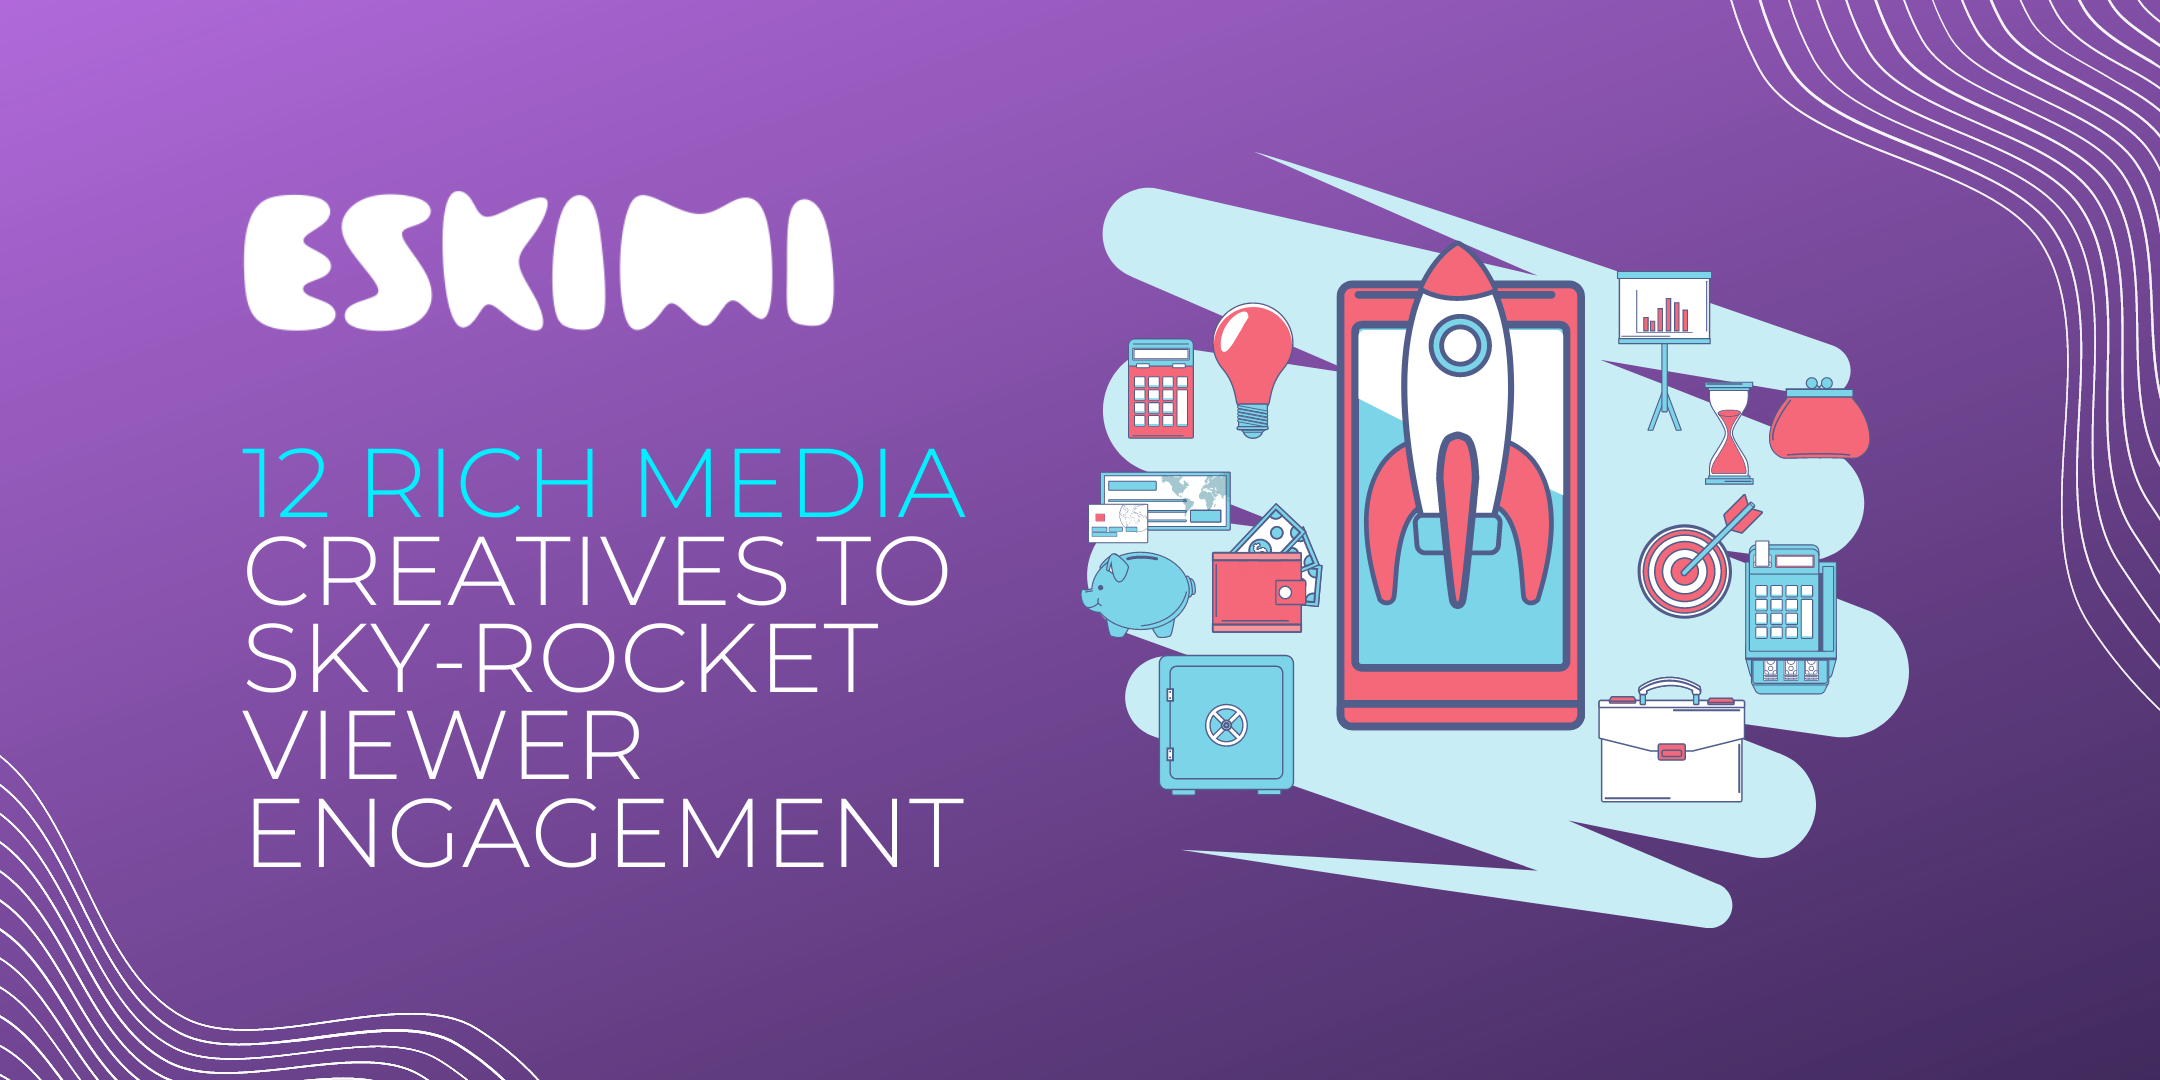 12 Rich Media Creatives to Sky-Rocket Viewer Engagement